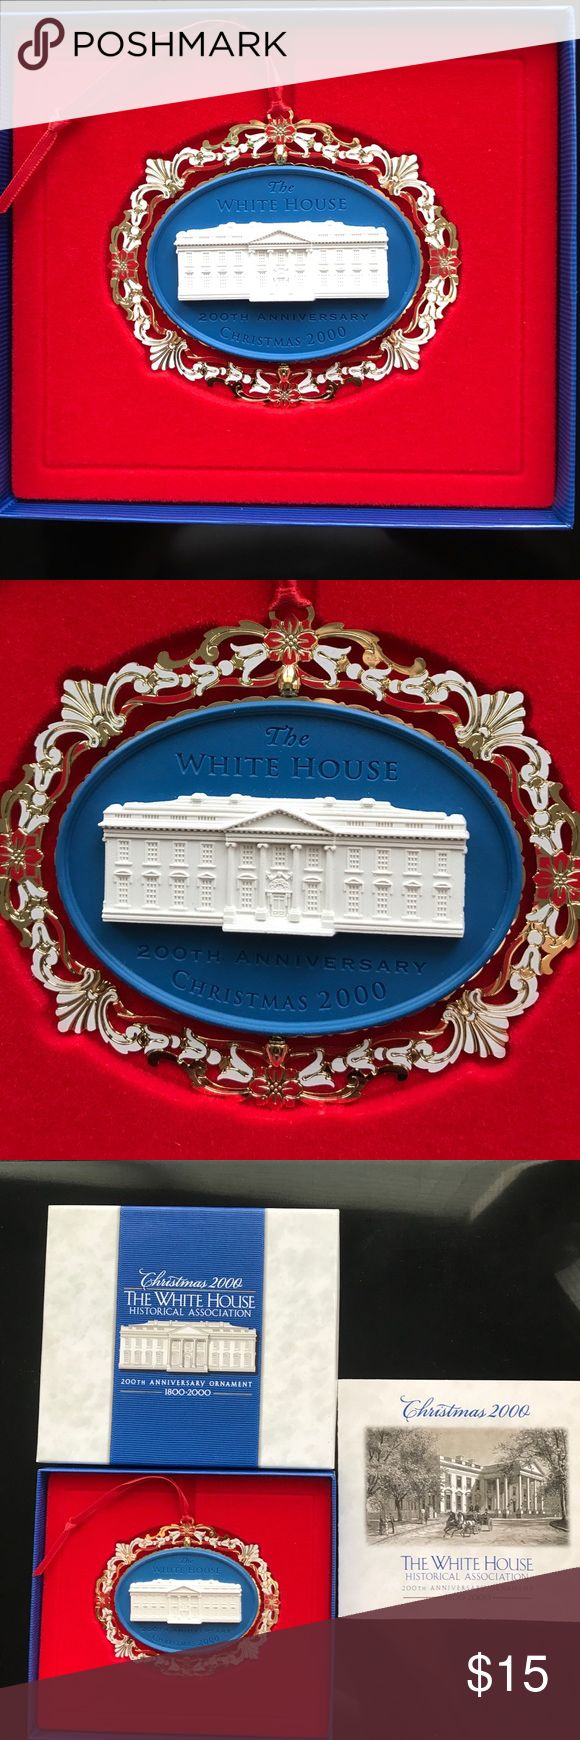 White House Ornaments Y2K This is a 200th Anniversary Historical White House Christmas ornament 1800-2000 from the Historical Association. Other